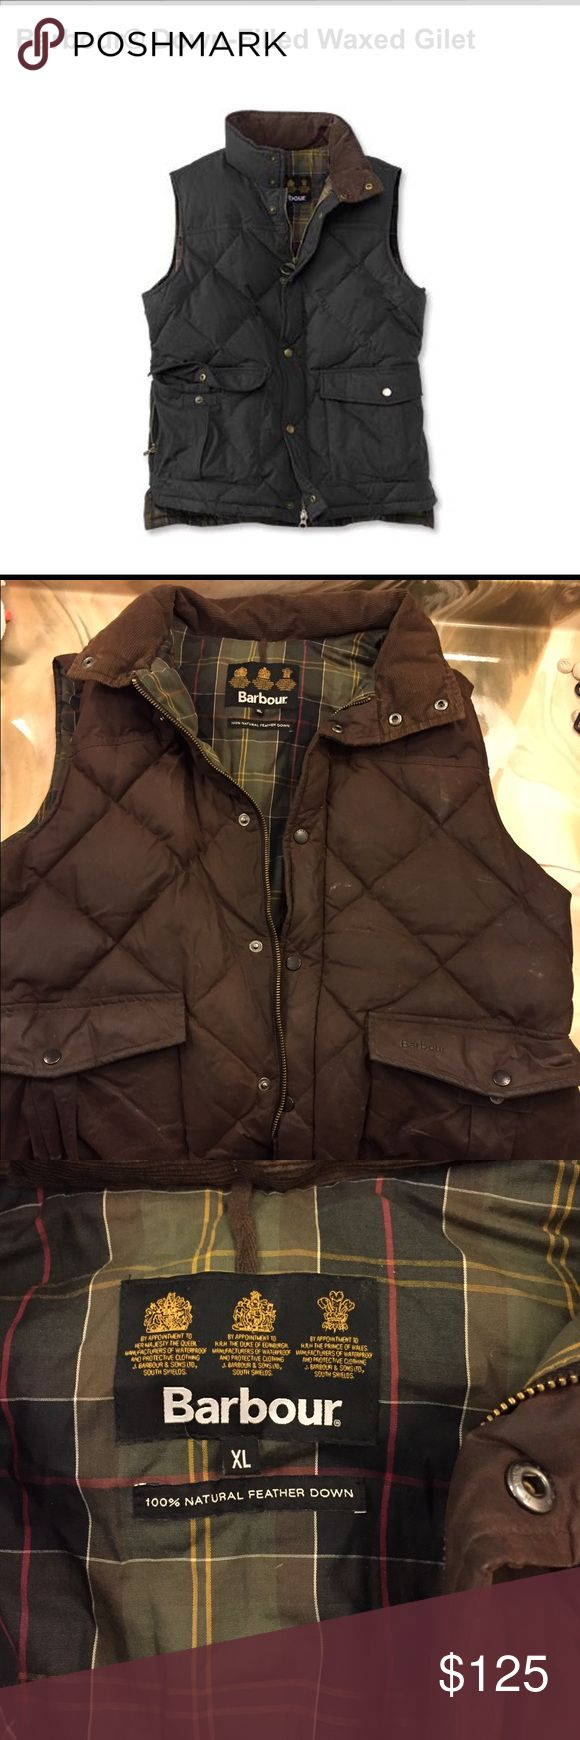 Barbour waxed cotton vest Men's Barbour waxed cotton quilted vest. Brown in color. Size XL. In great shape. Barbour Jackets & Coats Vests